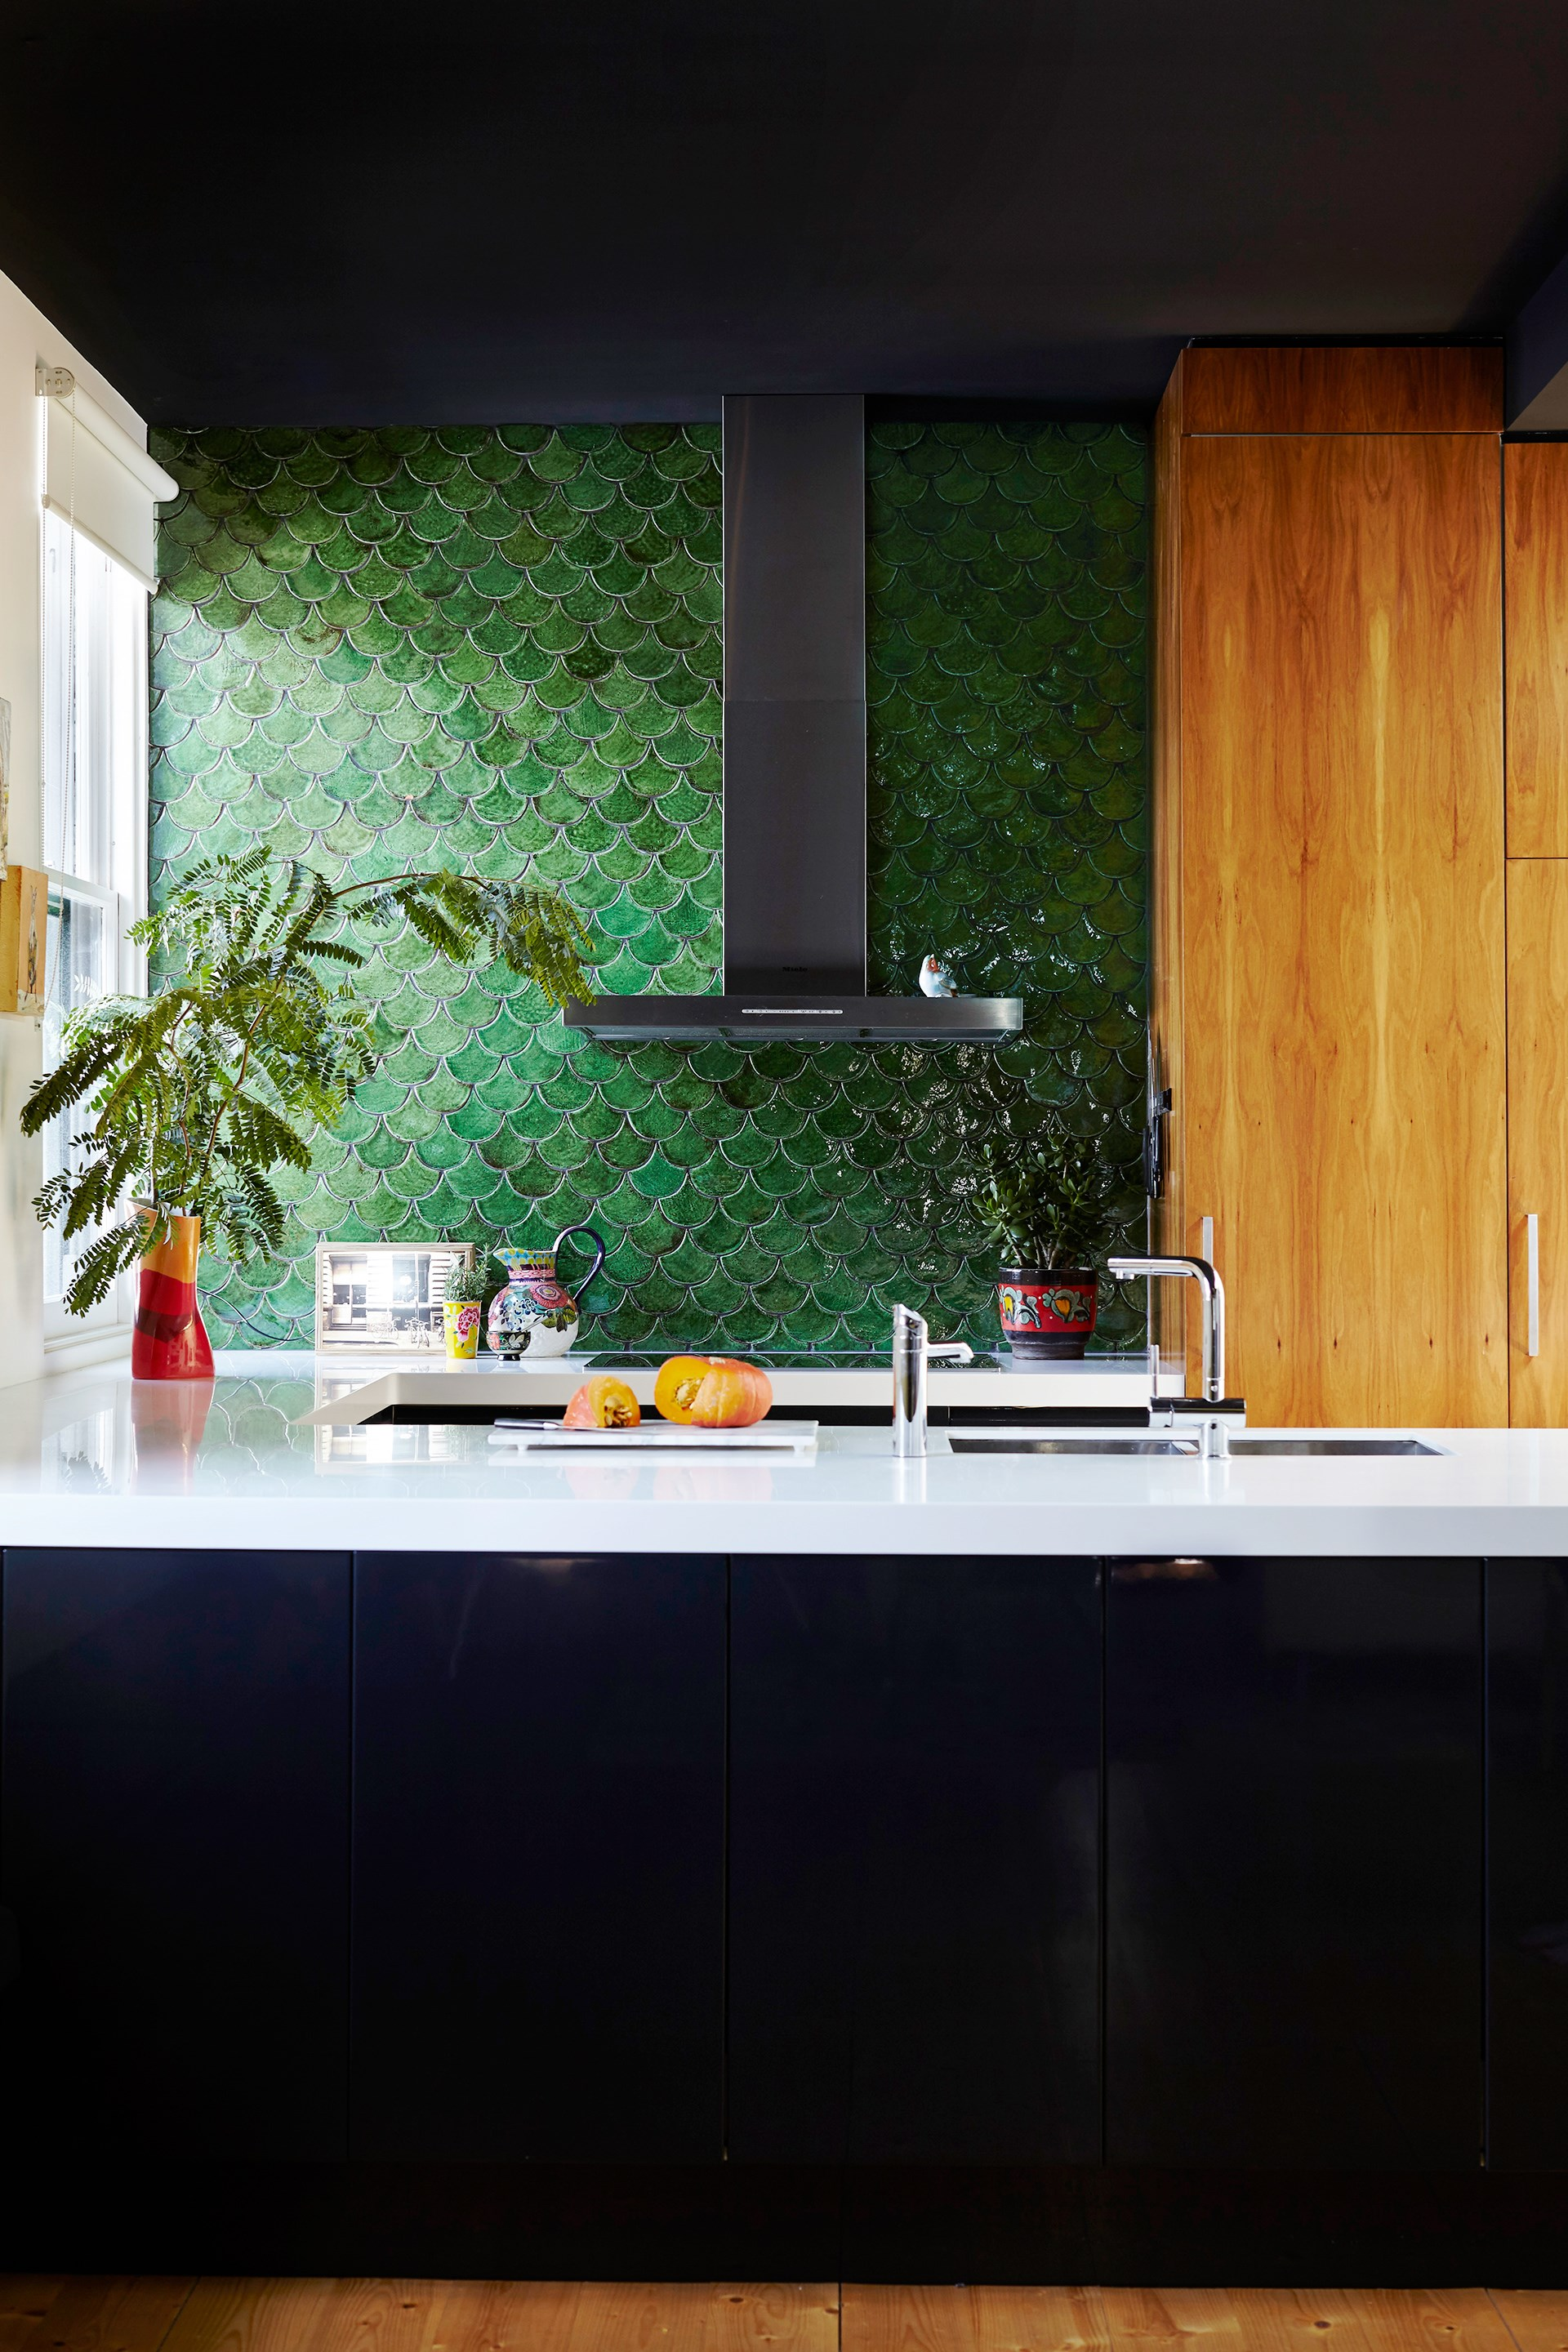 """Olive-green fishscale-patterned tiles add character to the contemporary kitchen in this [Victorian home](http://www.homestolove.com.au/grand-victorian-home-gets-a-colourful-personality-3642